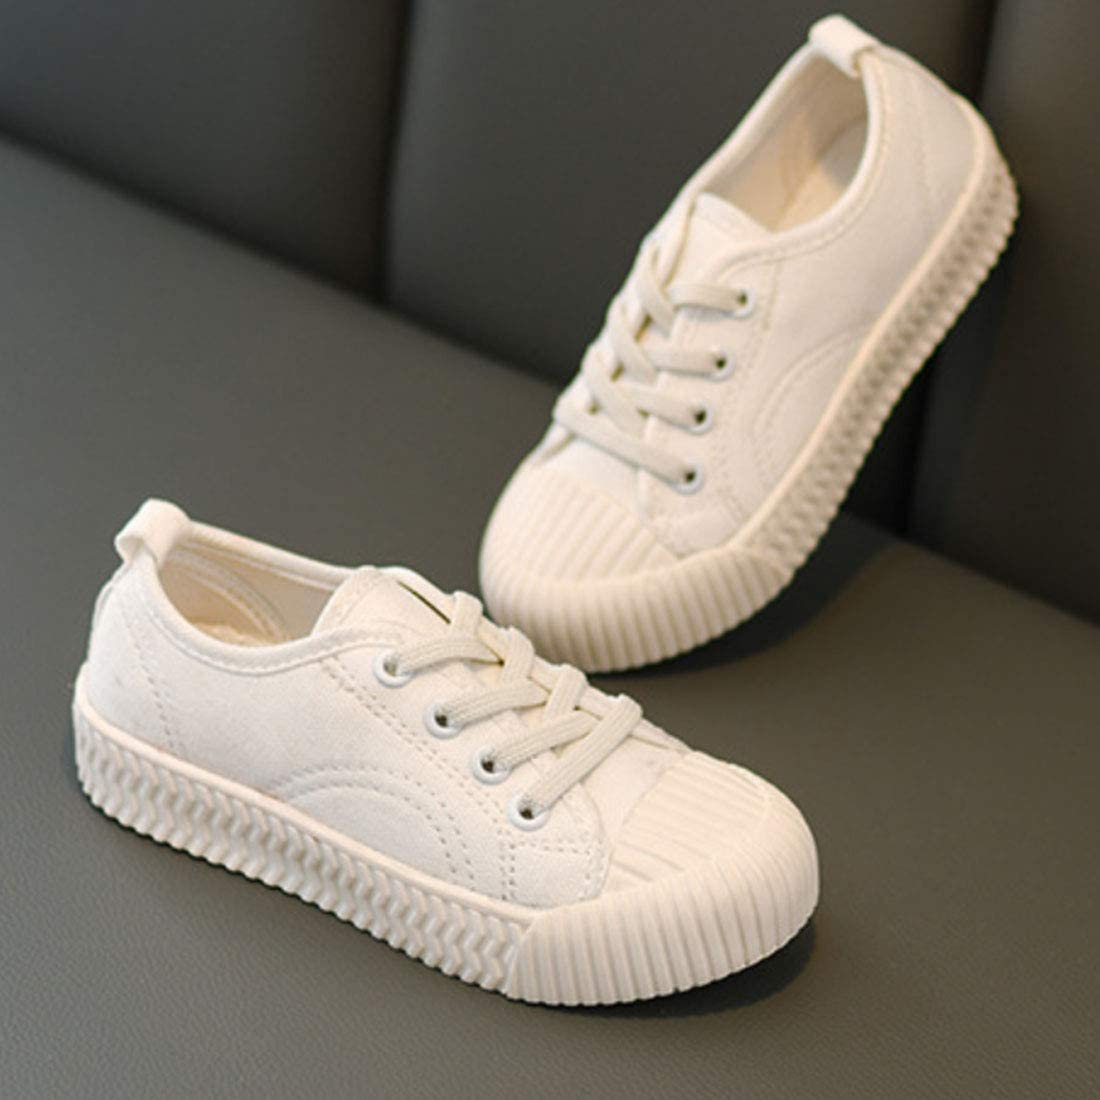 Daclay Kids Shoes Biscuit Shoes Girl Canvas Shoes 2019 Spring and Autumn New Boys Shoes Kindergarten Shoes